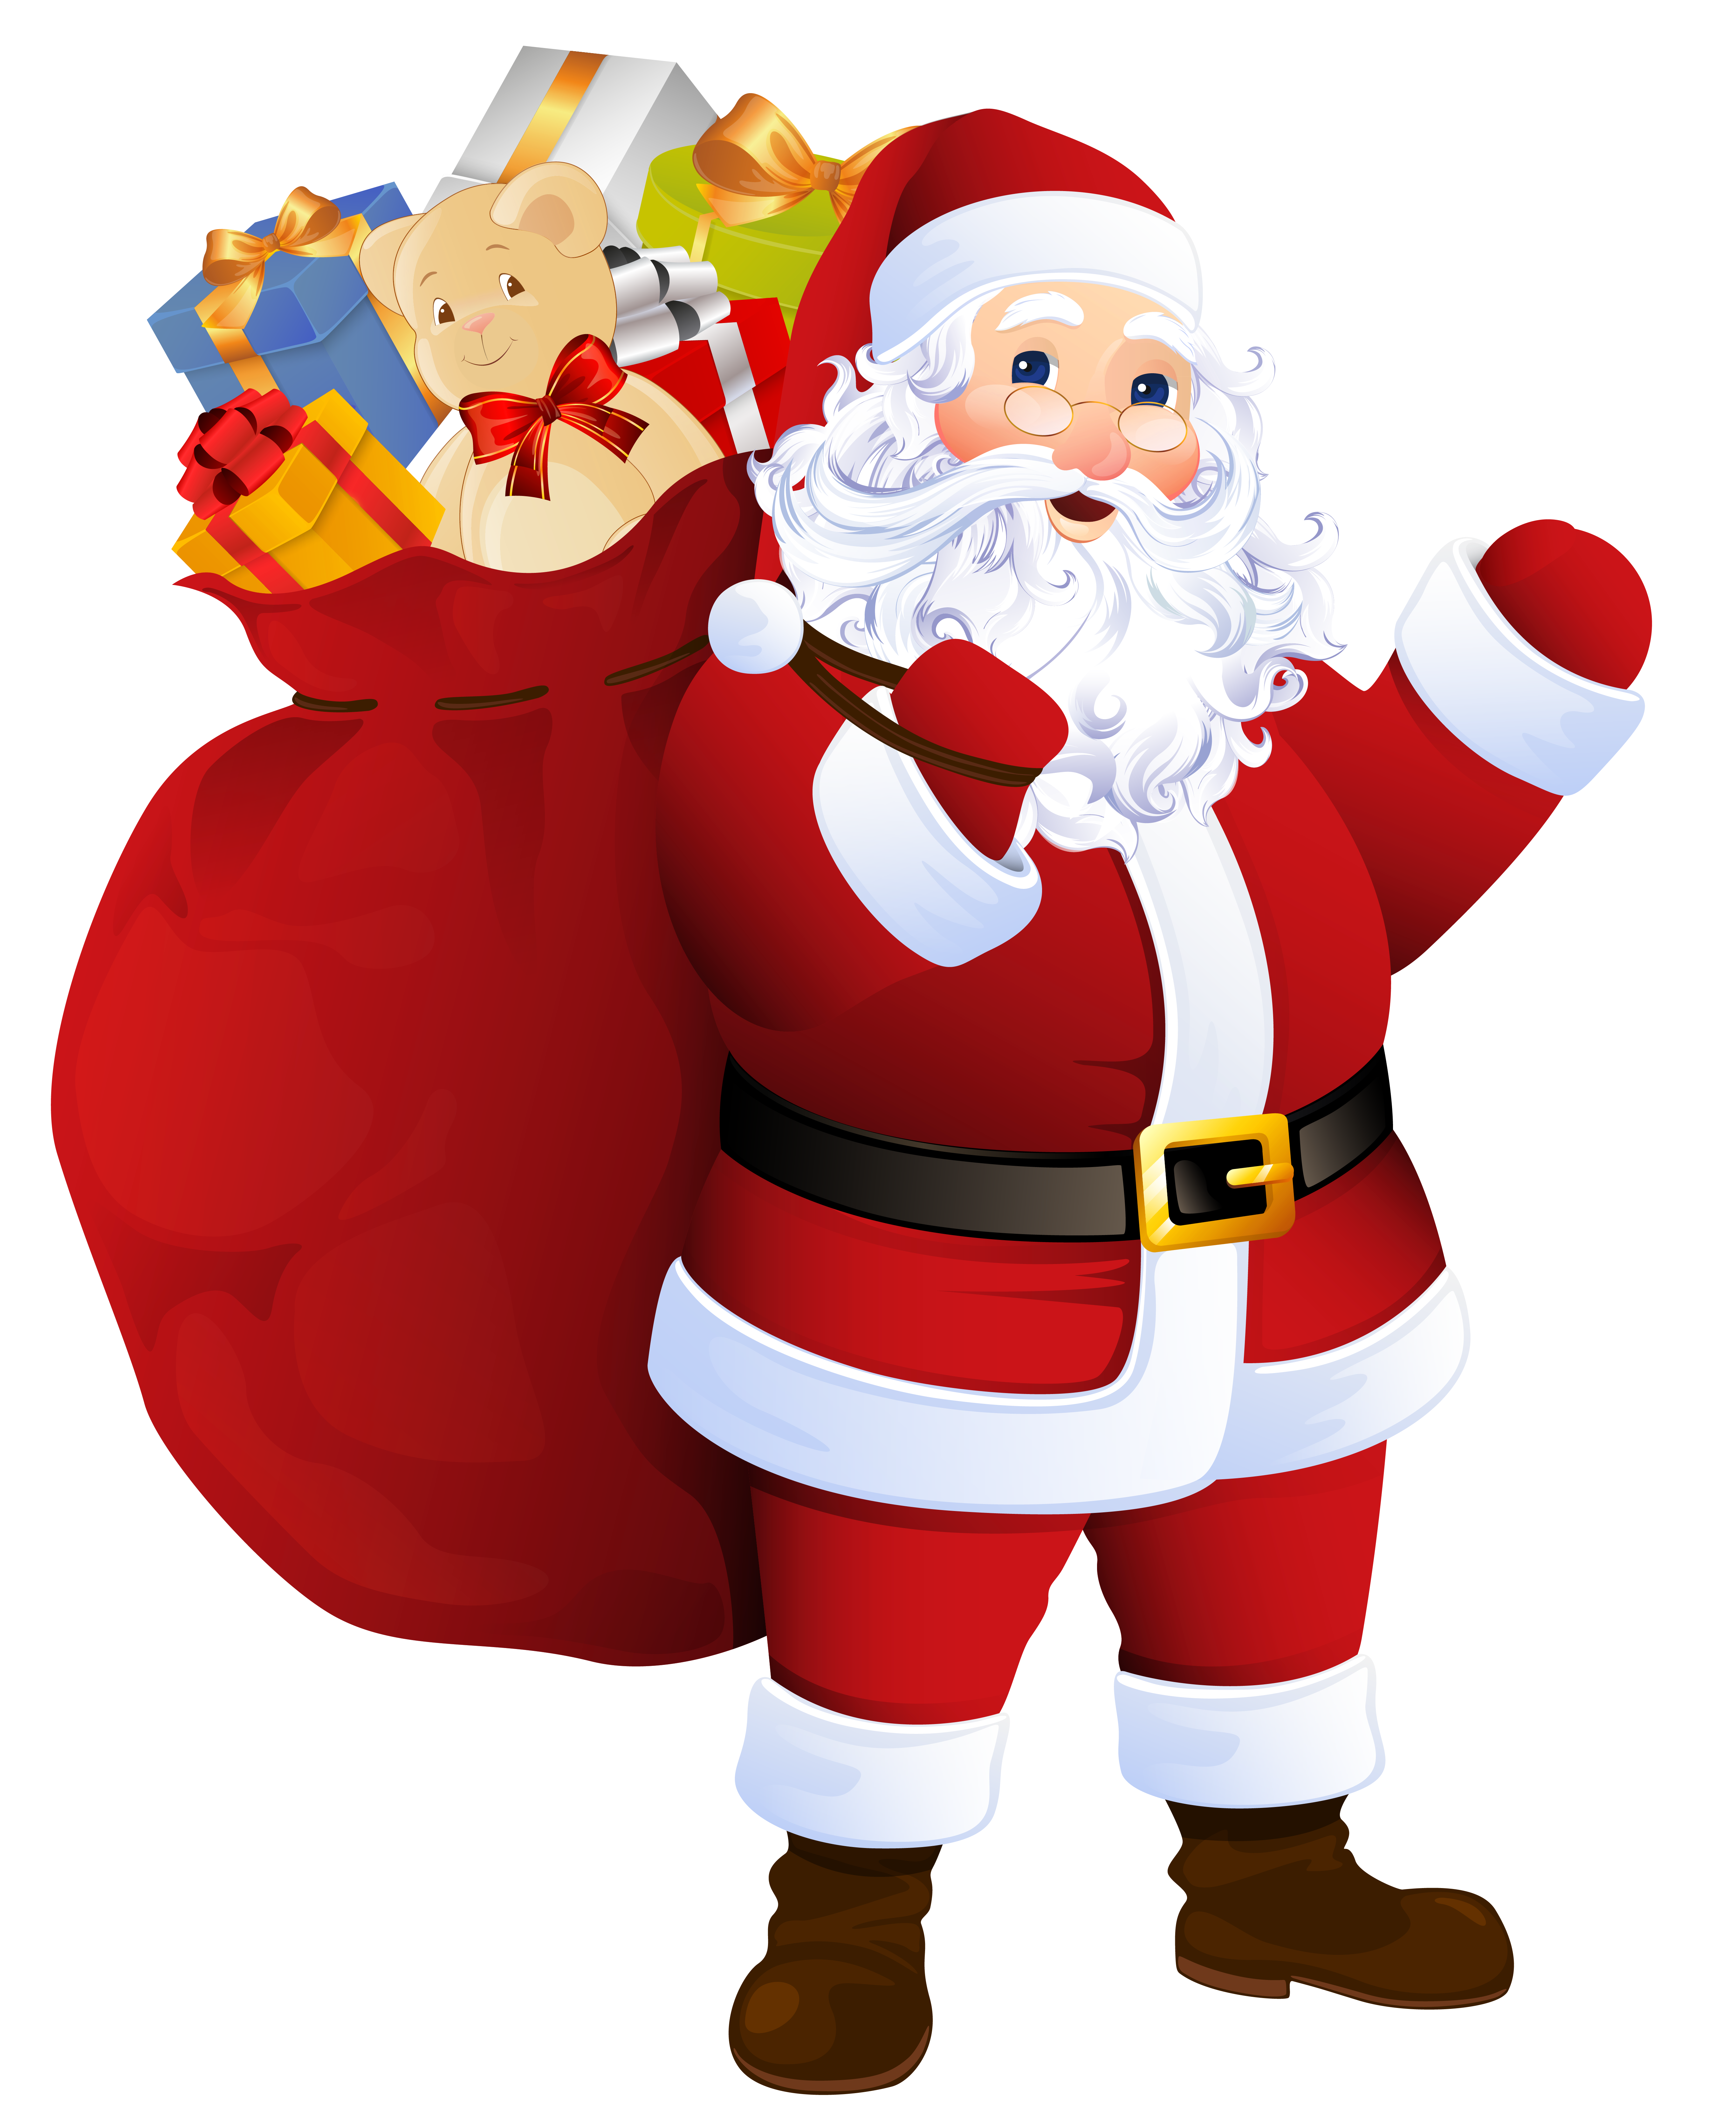 Transparent santa claus with. Office clipart hallway